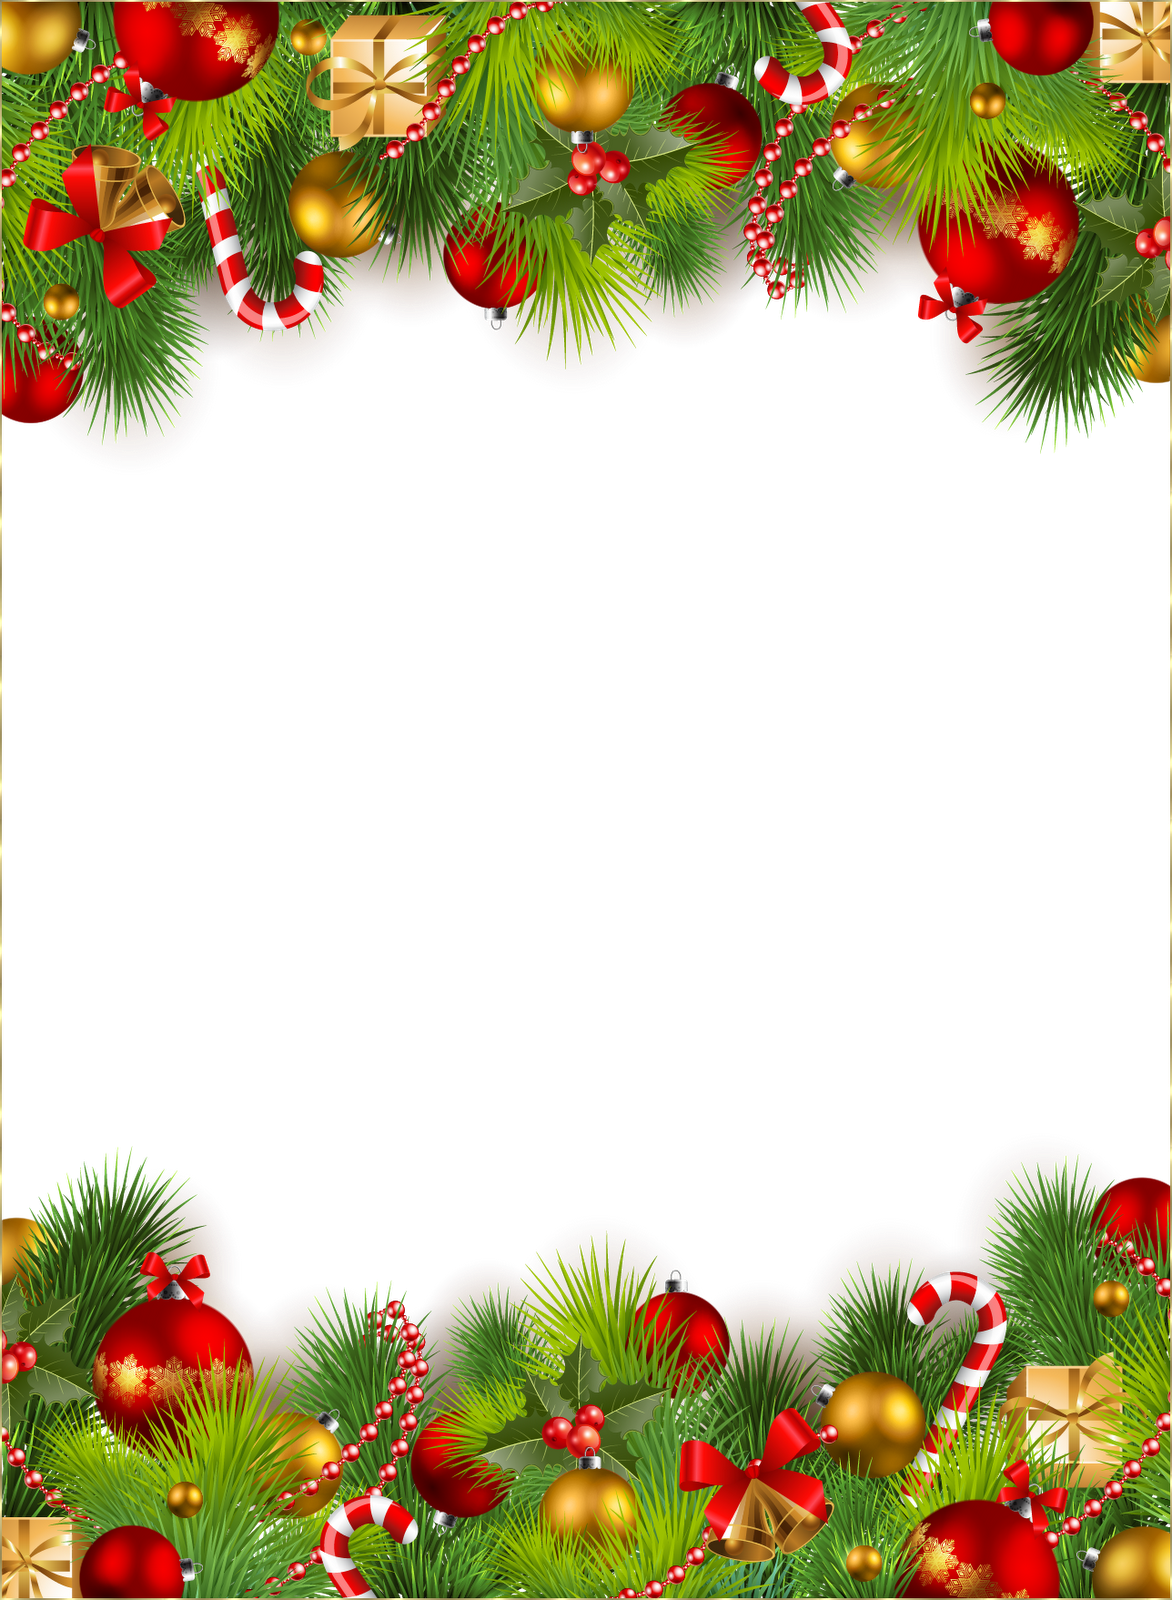 Image result for island christmas greetingsframe images | facebool ...